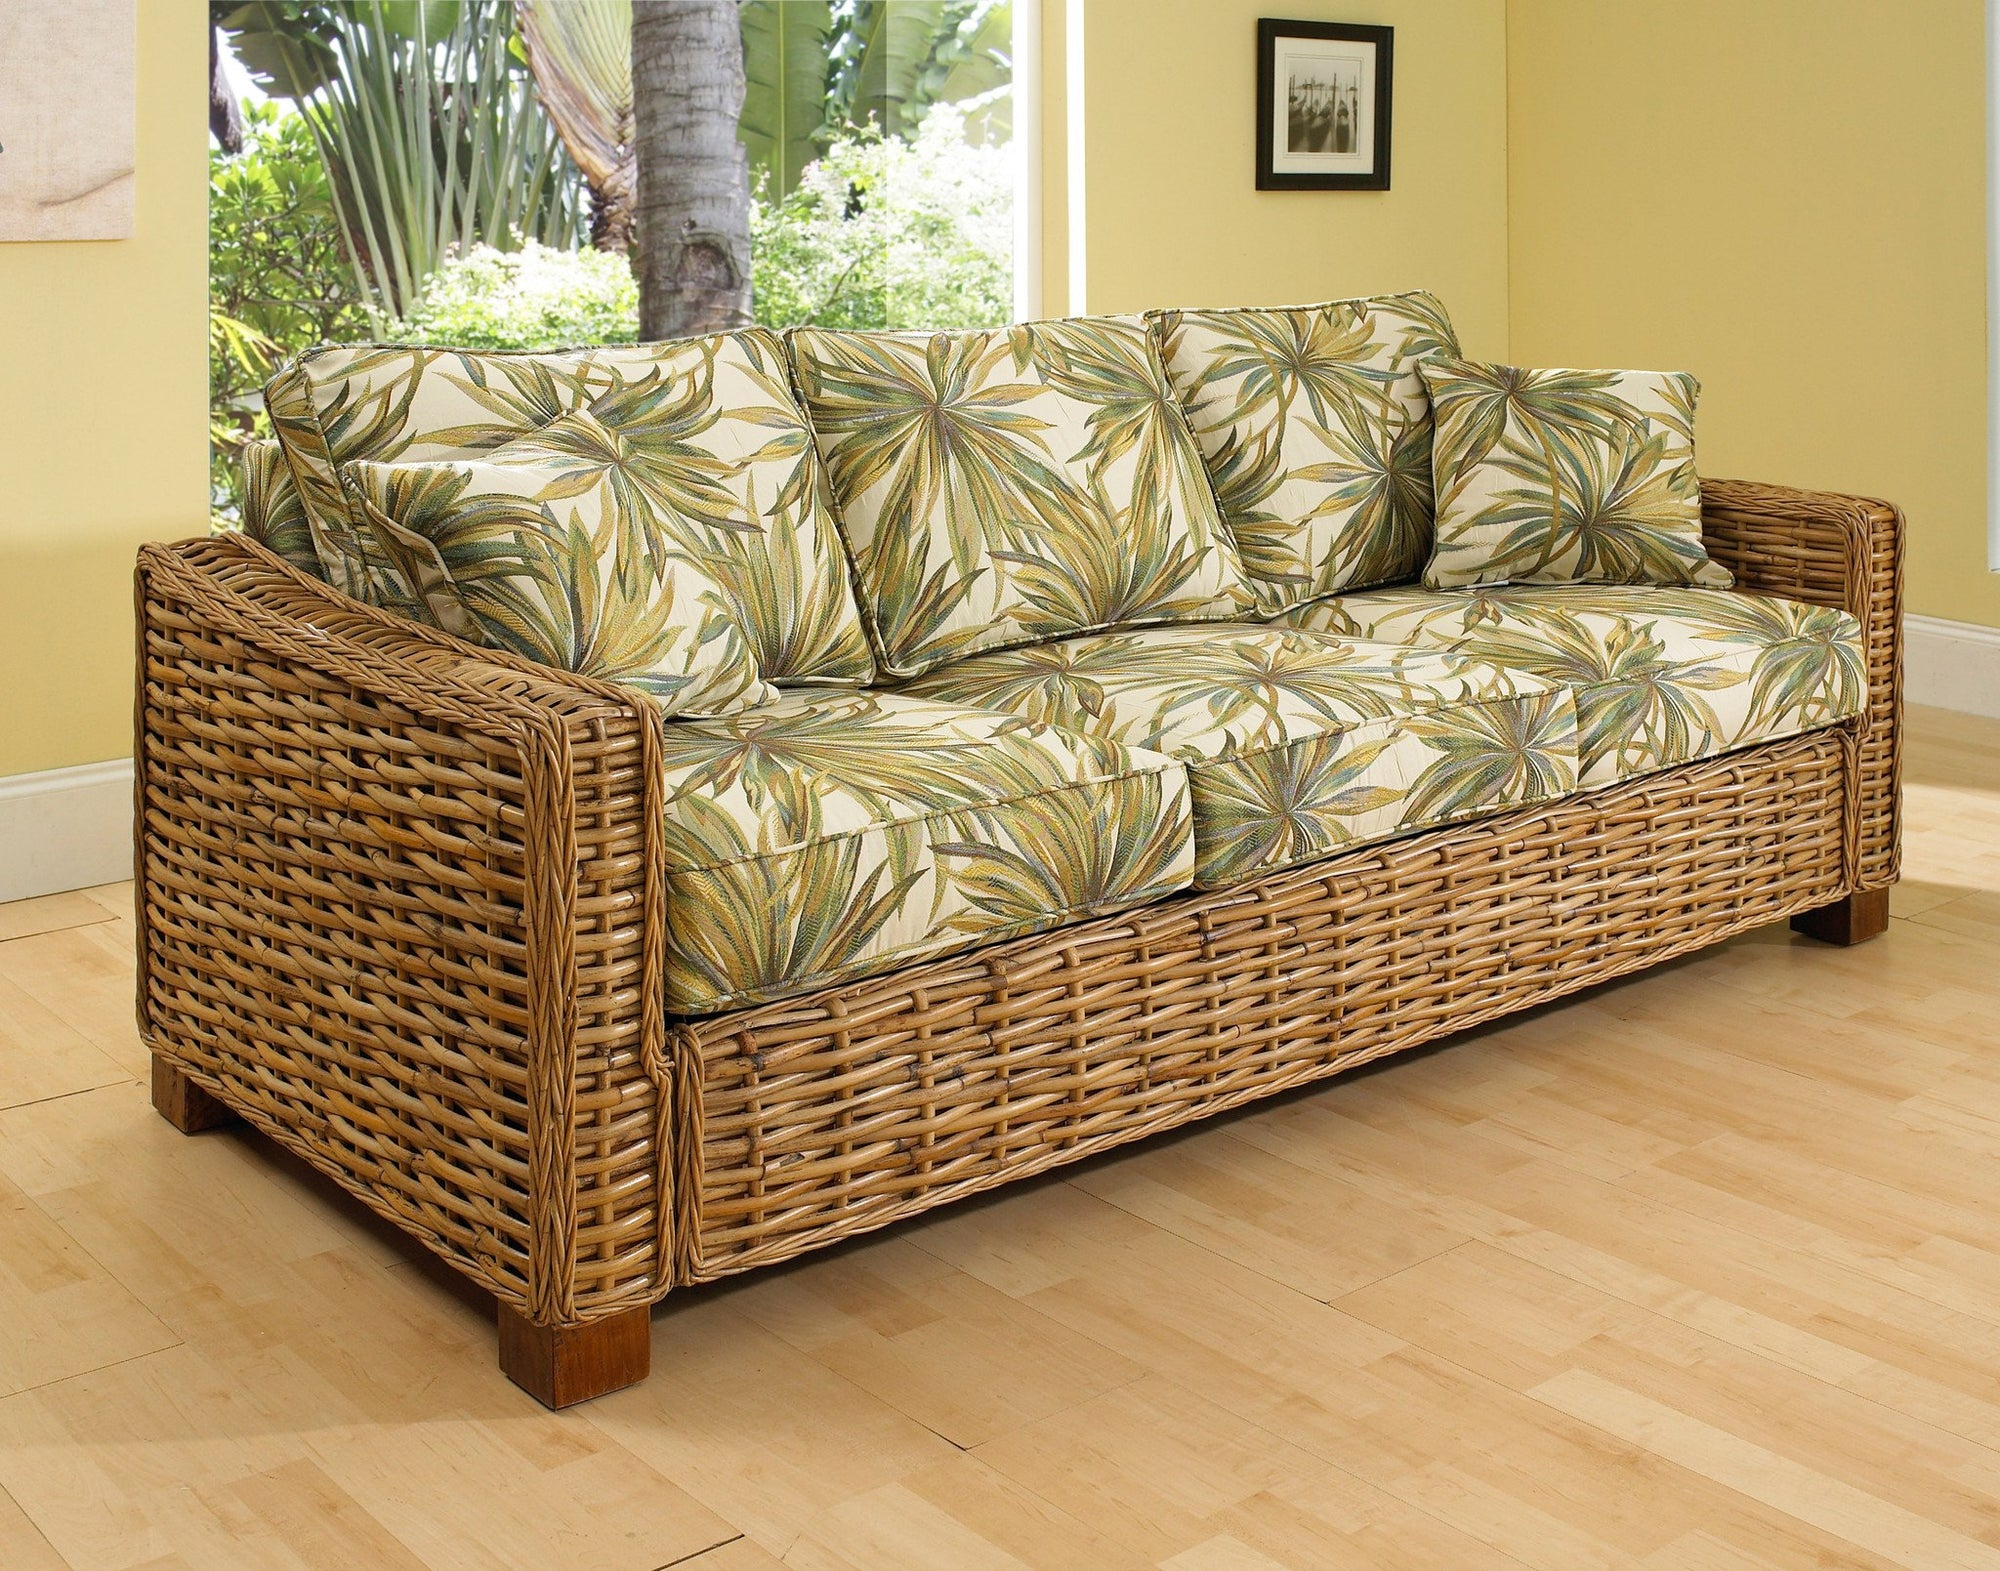 Designer Wicker & Rattan By Tribor Freeport Sleeper Sofa by Designer Wicker from Tribor Sofa - Rattan Imports